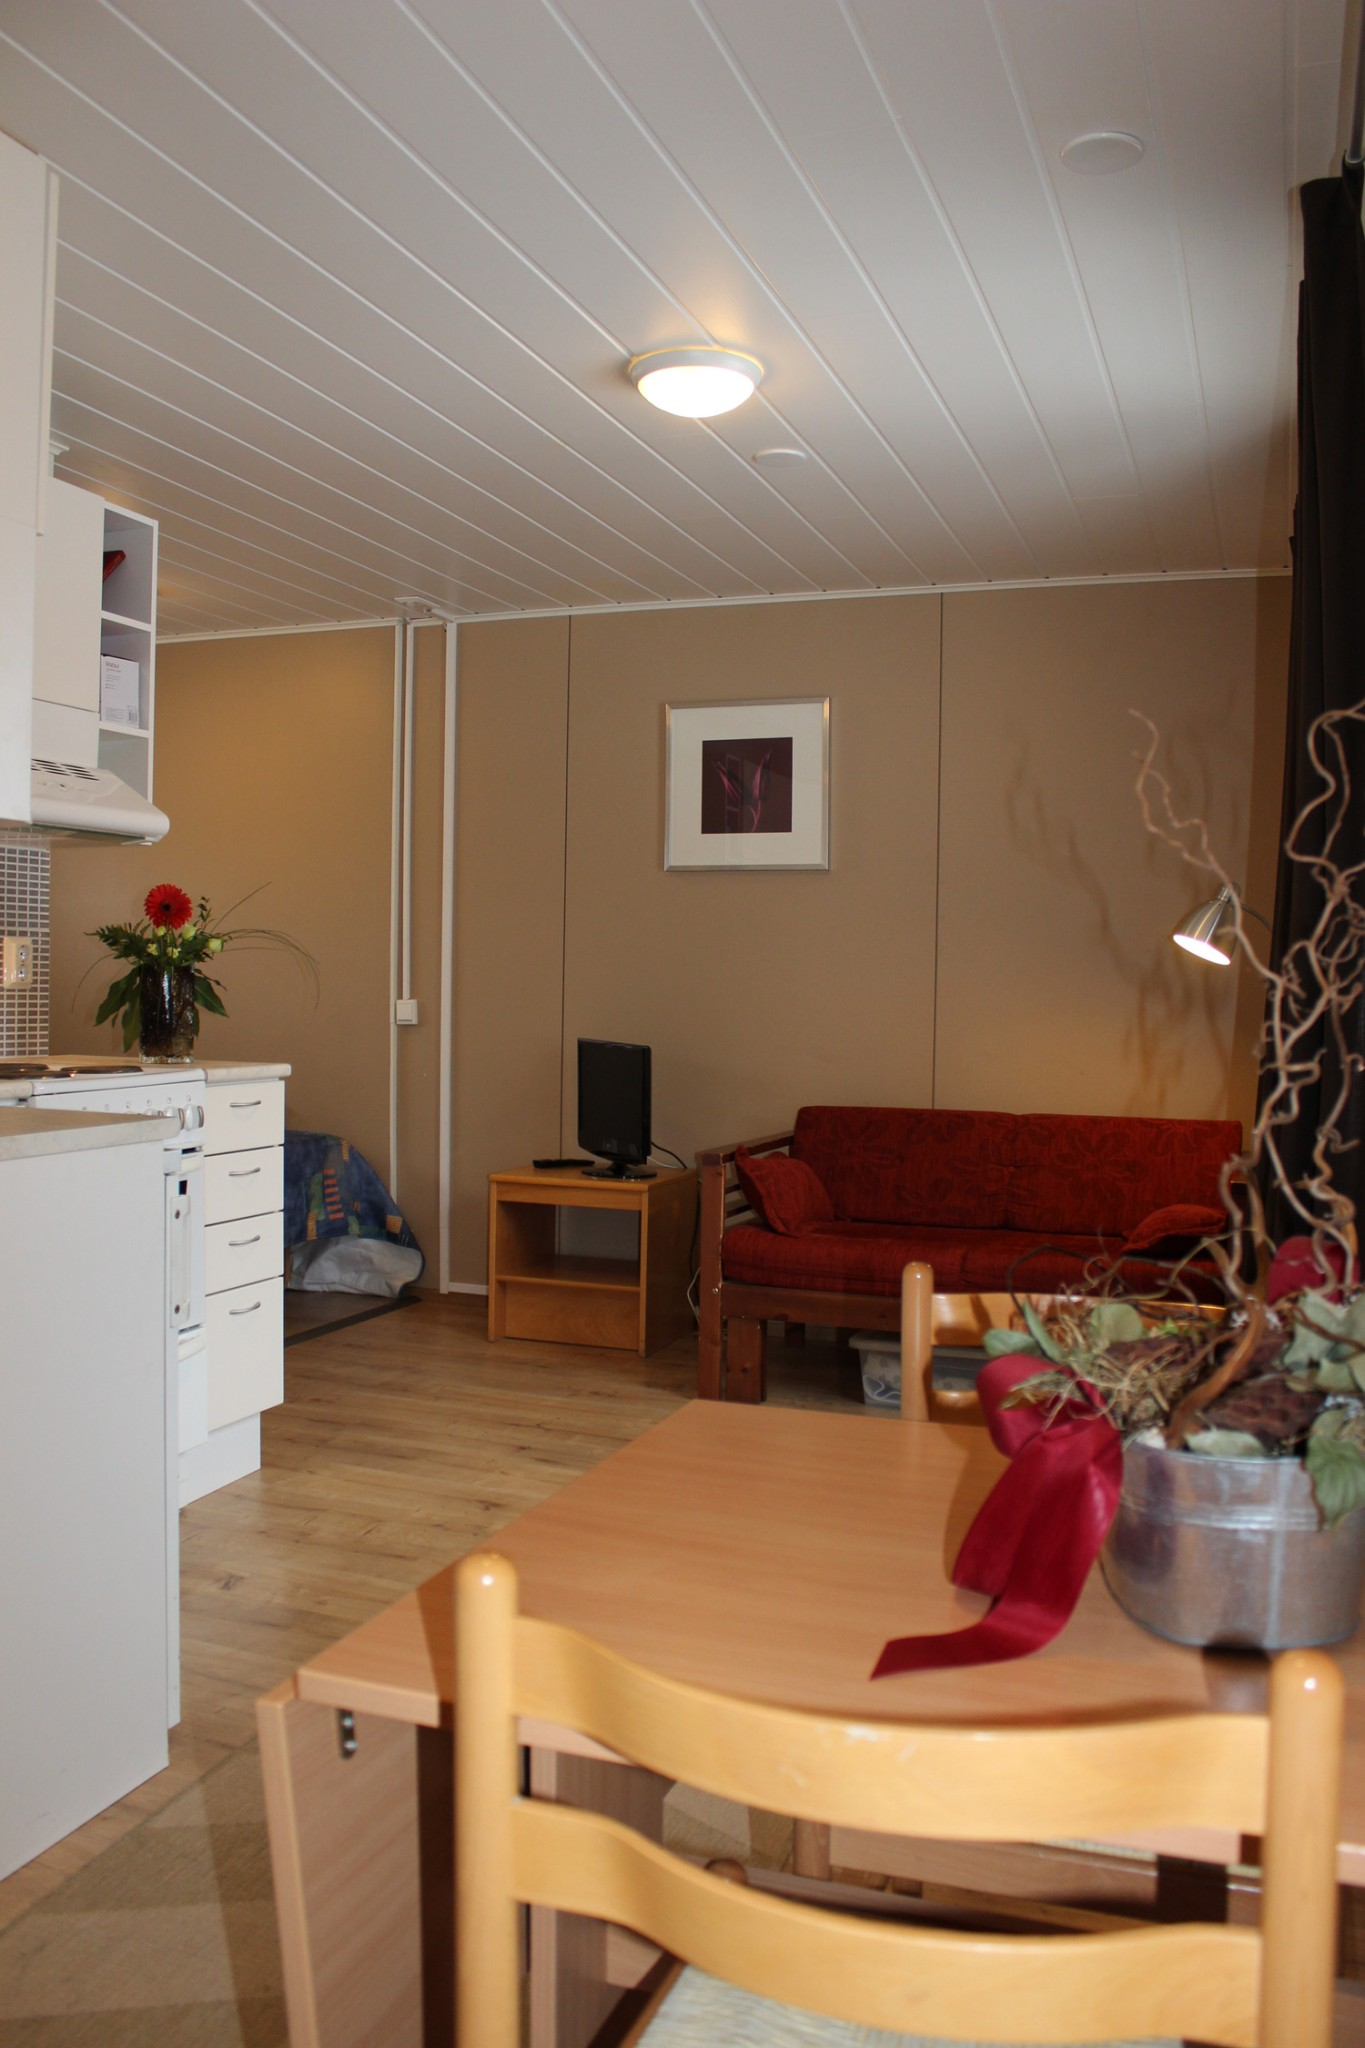 Installation of the sauna in the apartment